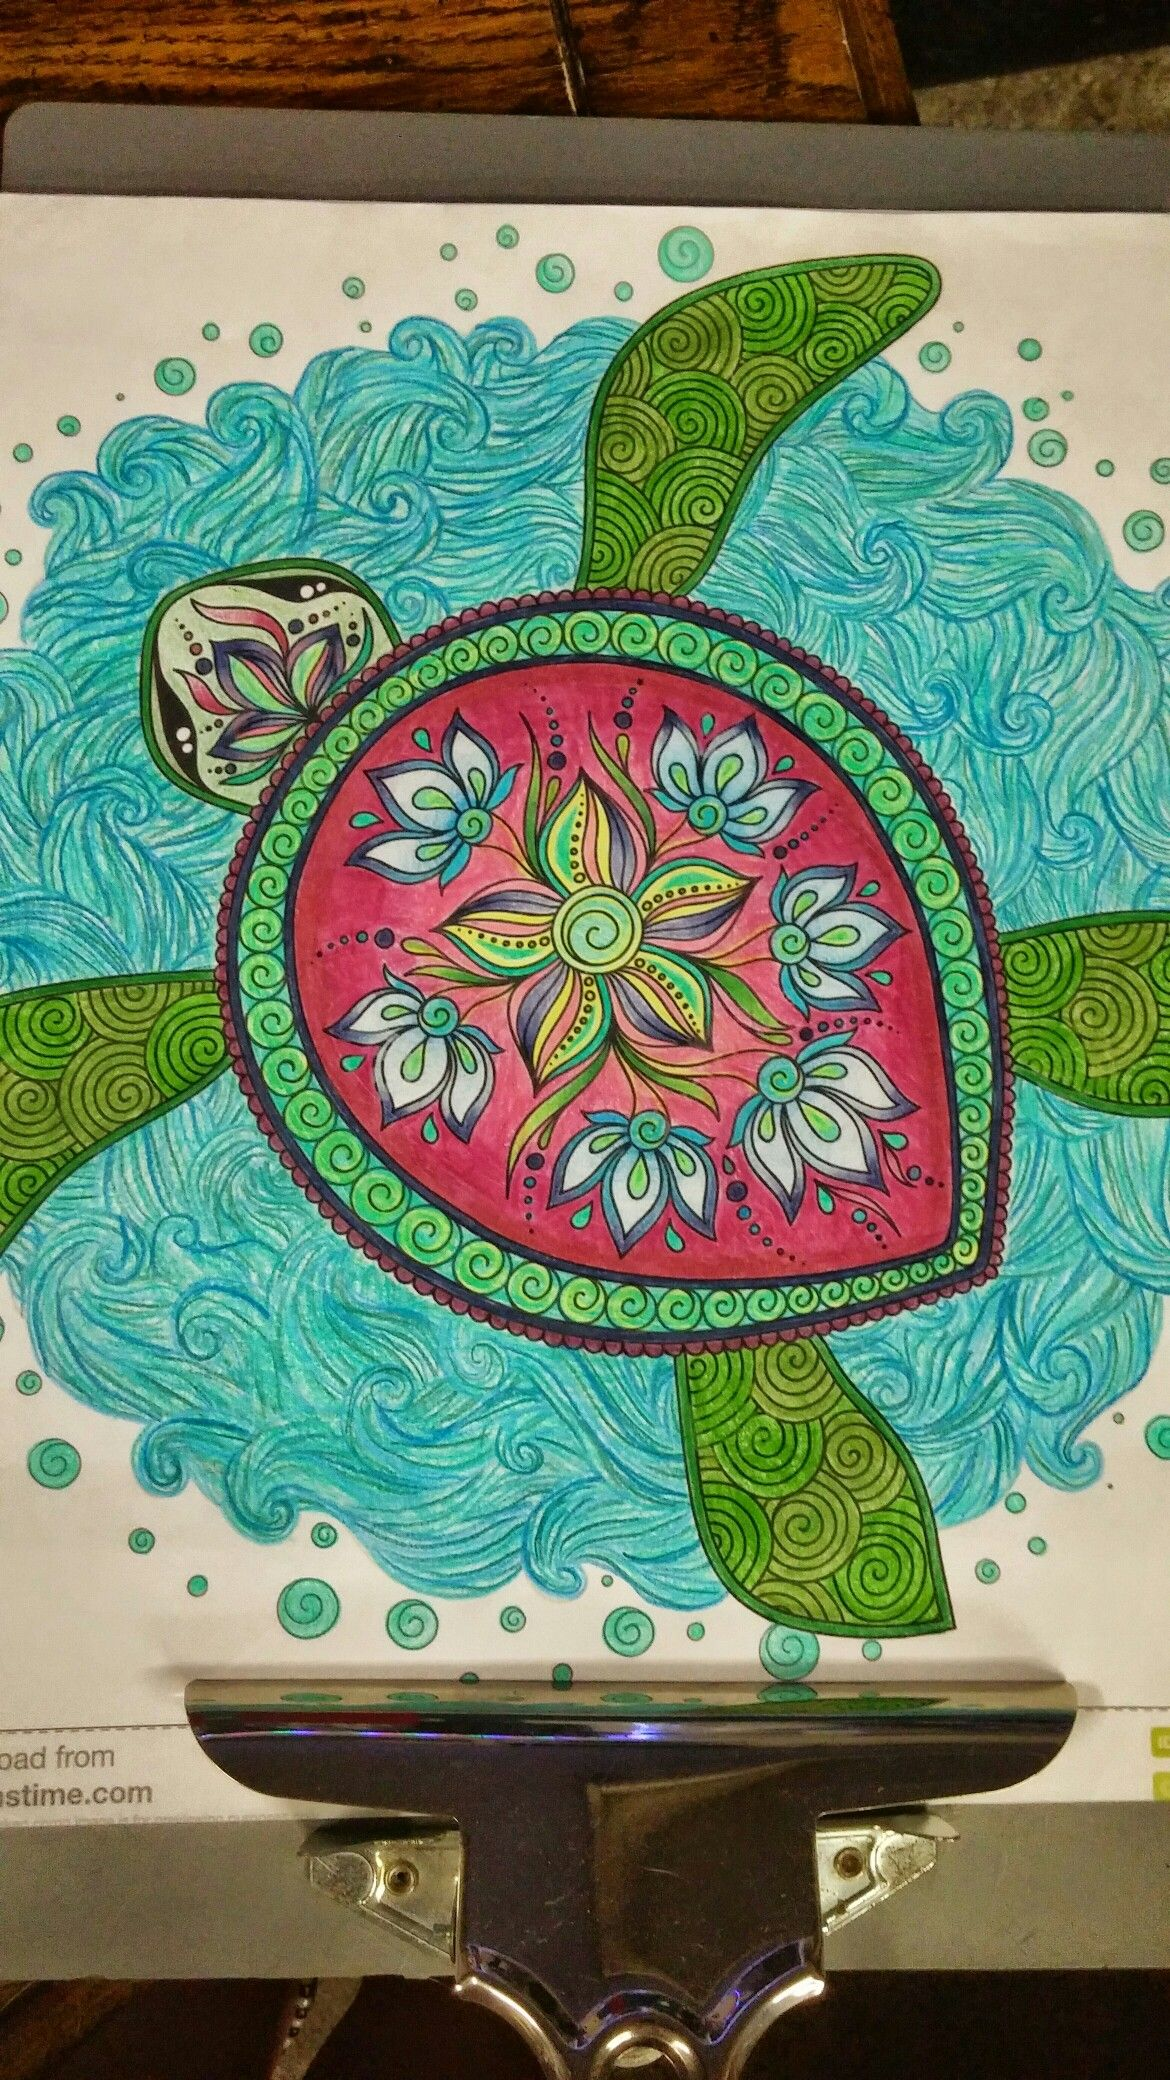 Adult Coloring Colorful Colored Pencils Prisma Completed Finished Turtle